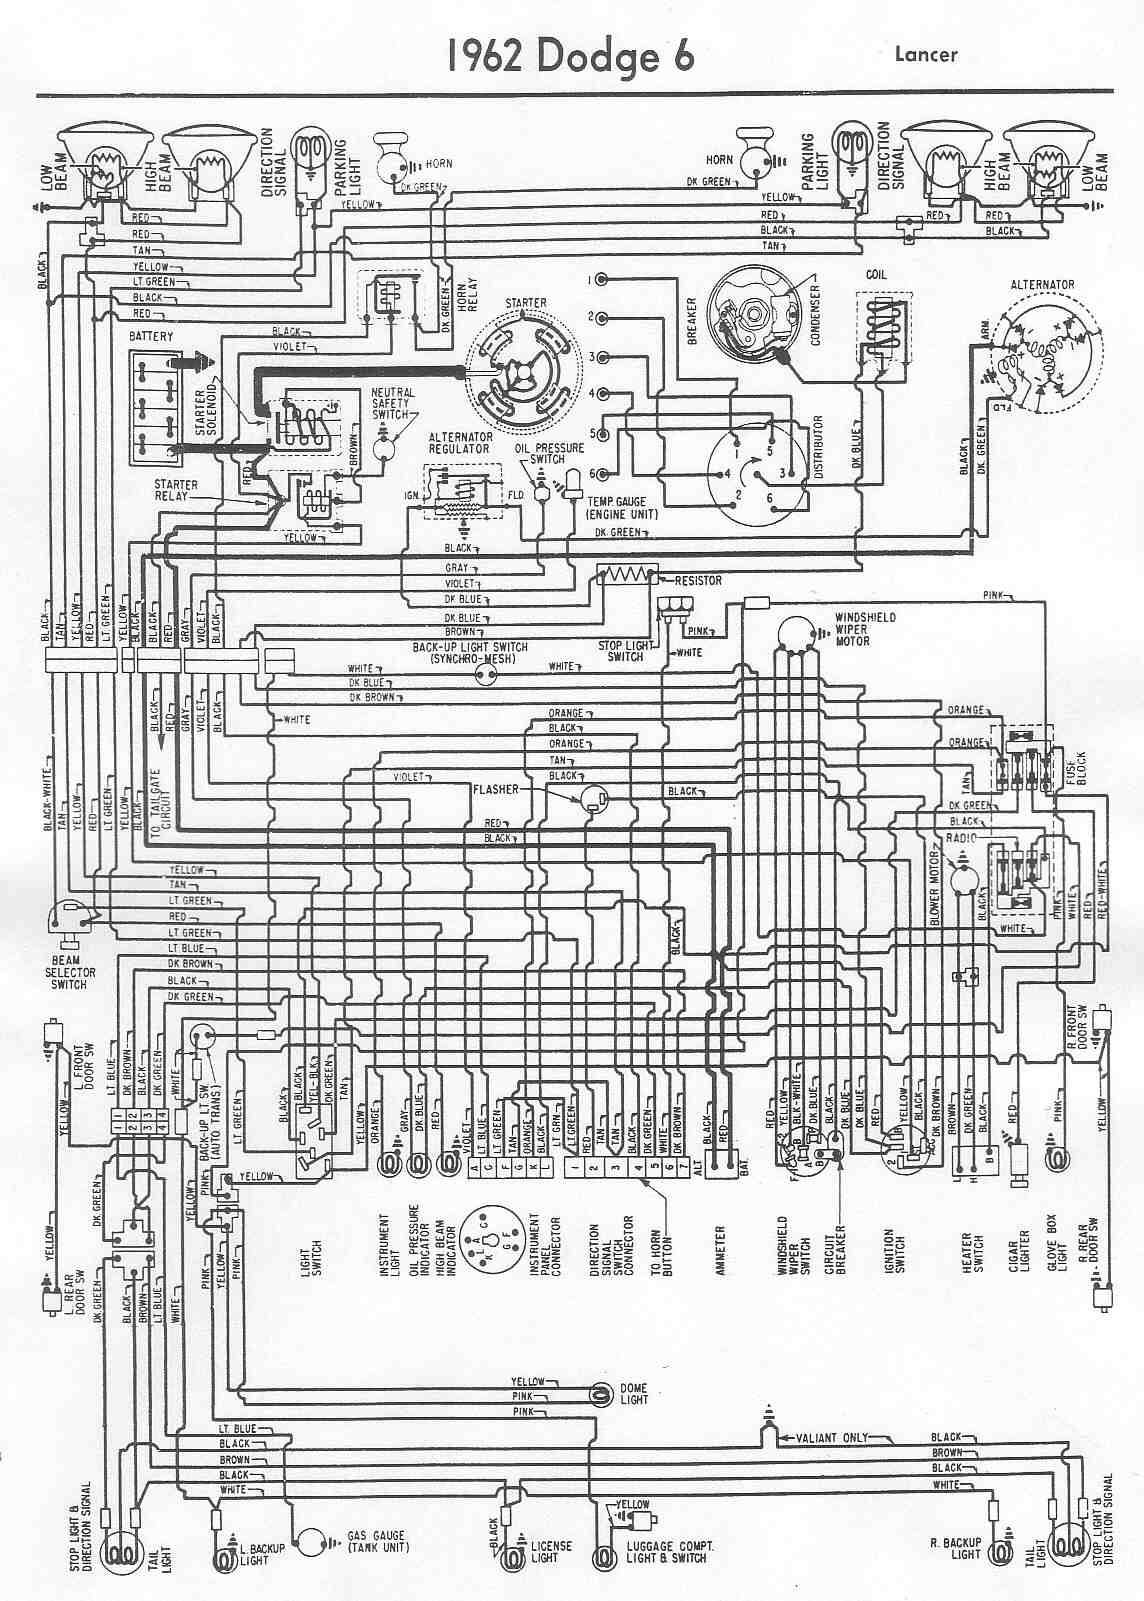 1957 Dodge Wiring Diagram Schematics D100 1955 Coronet 1952 Wire Diagrams 2012 Charger